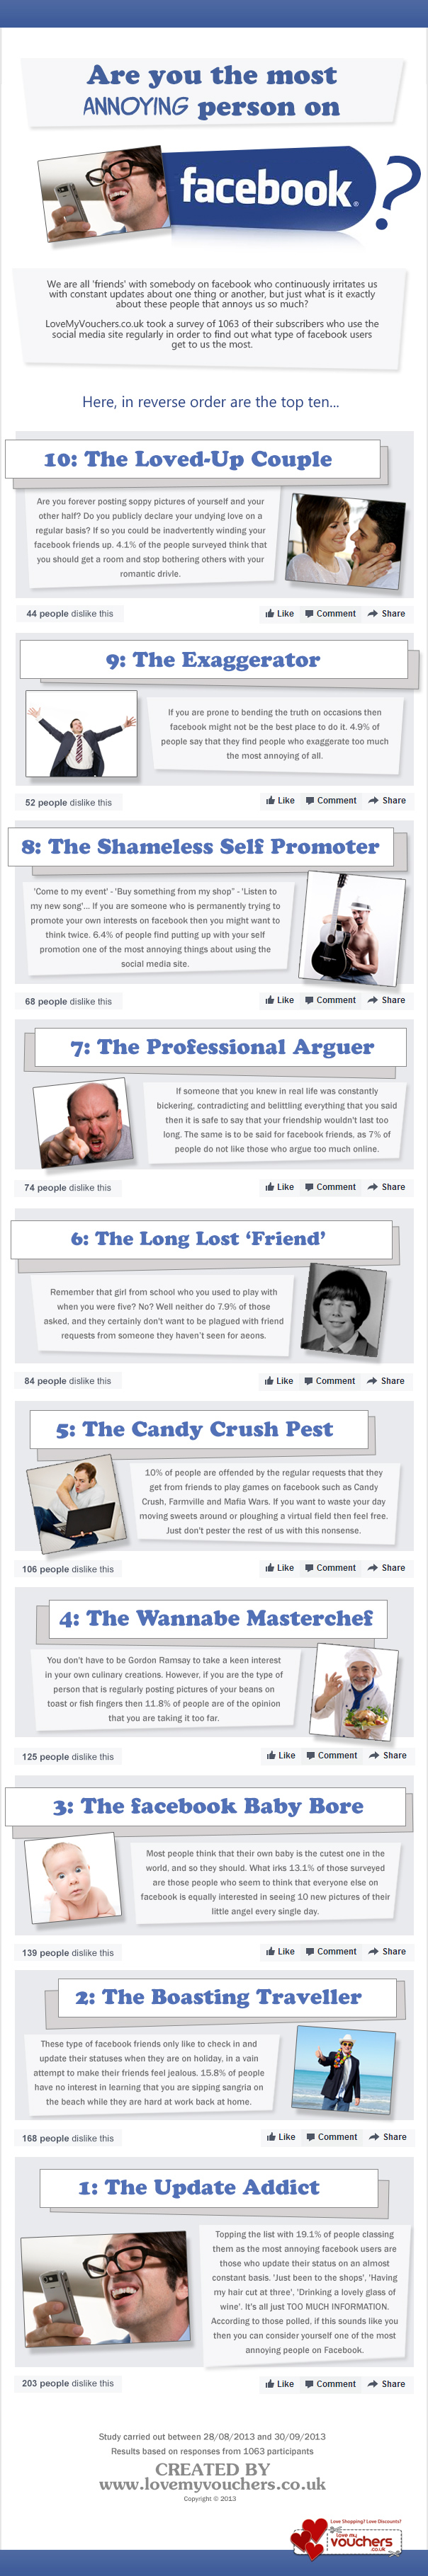 annoying-facebook-user-infographic5